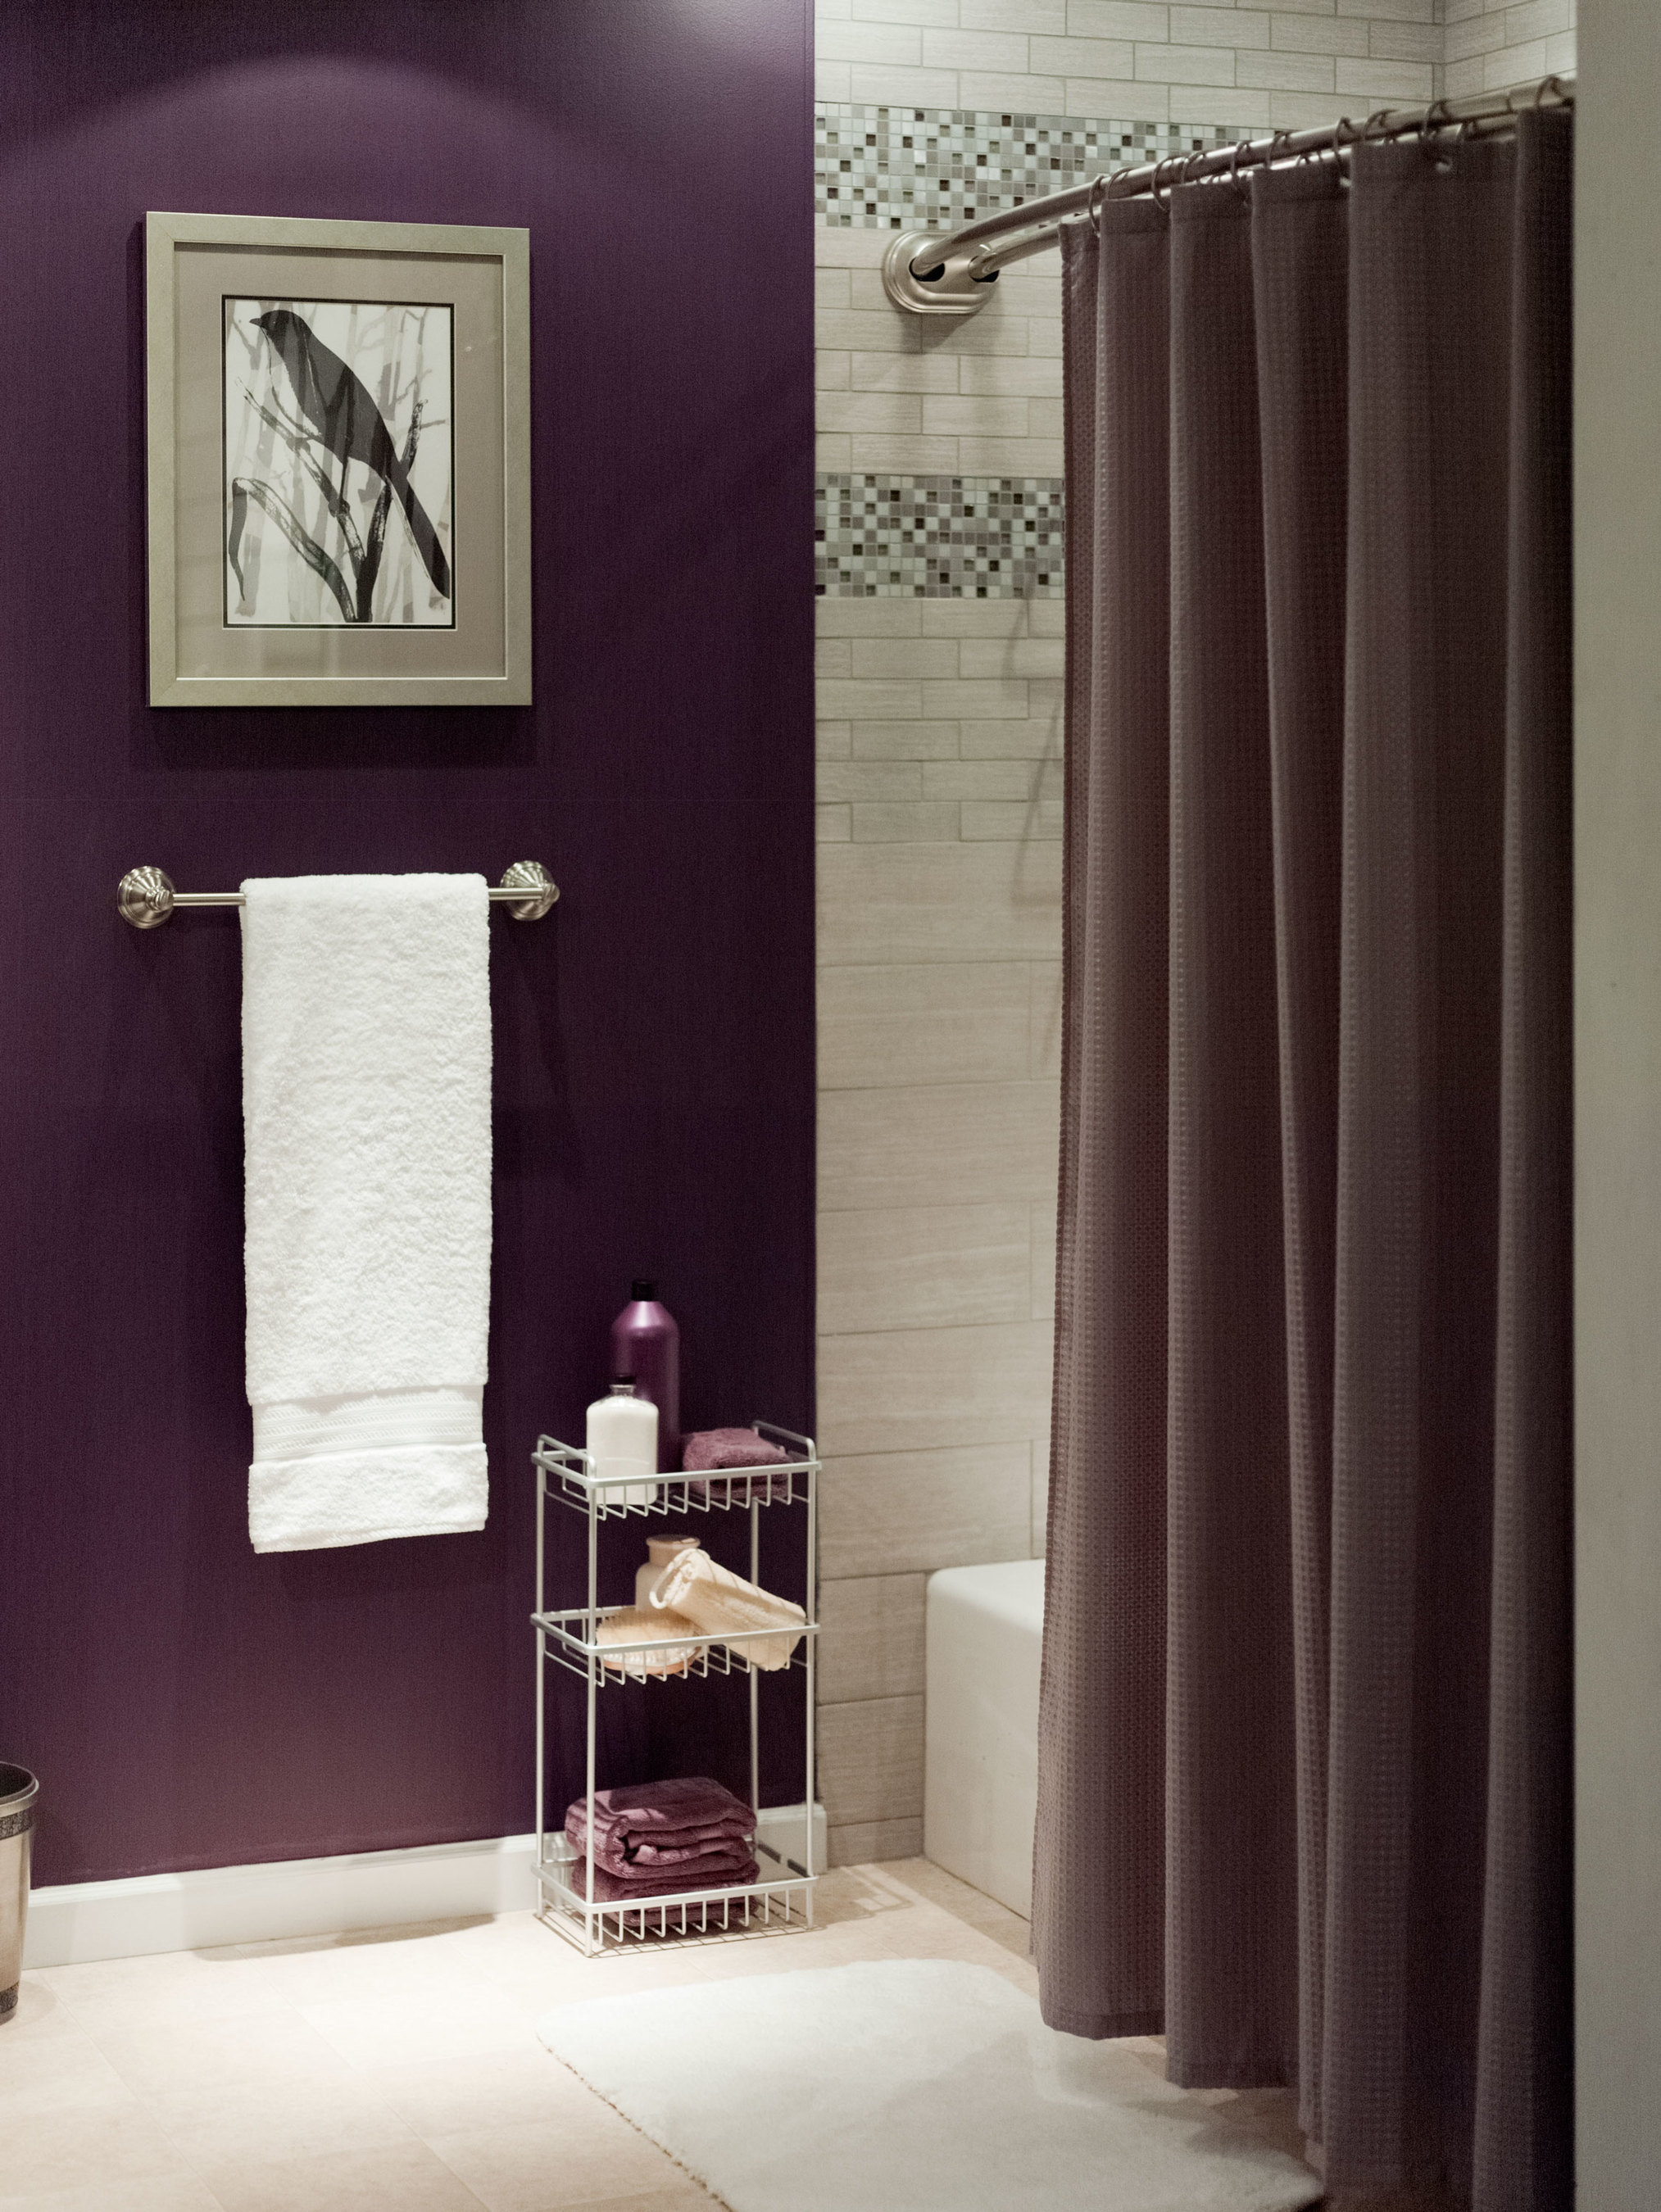 """""""Install a new shower rod, rings and caddy in minutes. Add a distinctive shower curtain and bath towels in fresh colors, and you're ready for spring! It's a great way to affordably transform a bathroom,"""" says Courtney Vagliardo, ZPC design director of fashion bath. (PRNewsFoto/Zenith Products Corp. (ZPC))"""